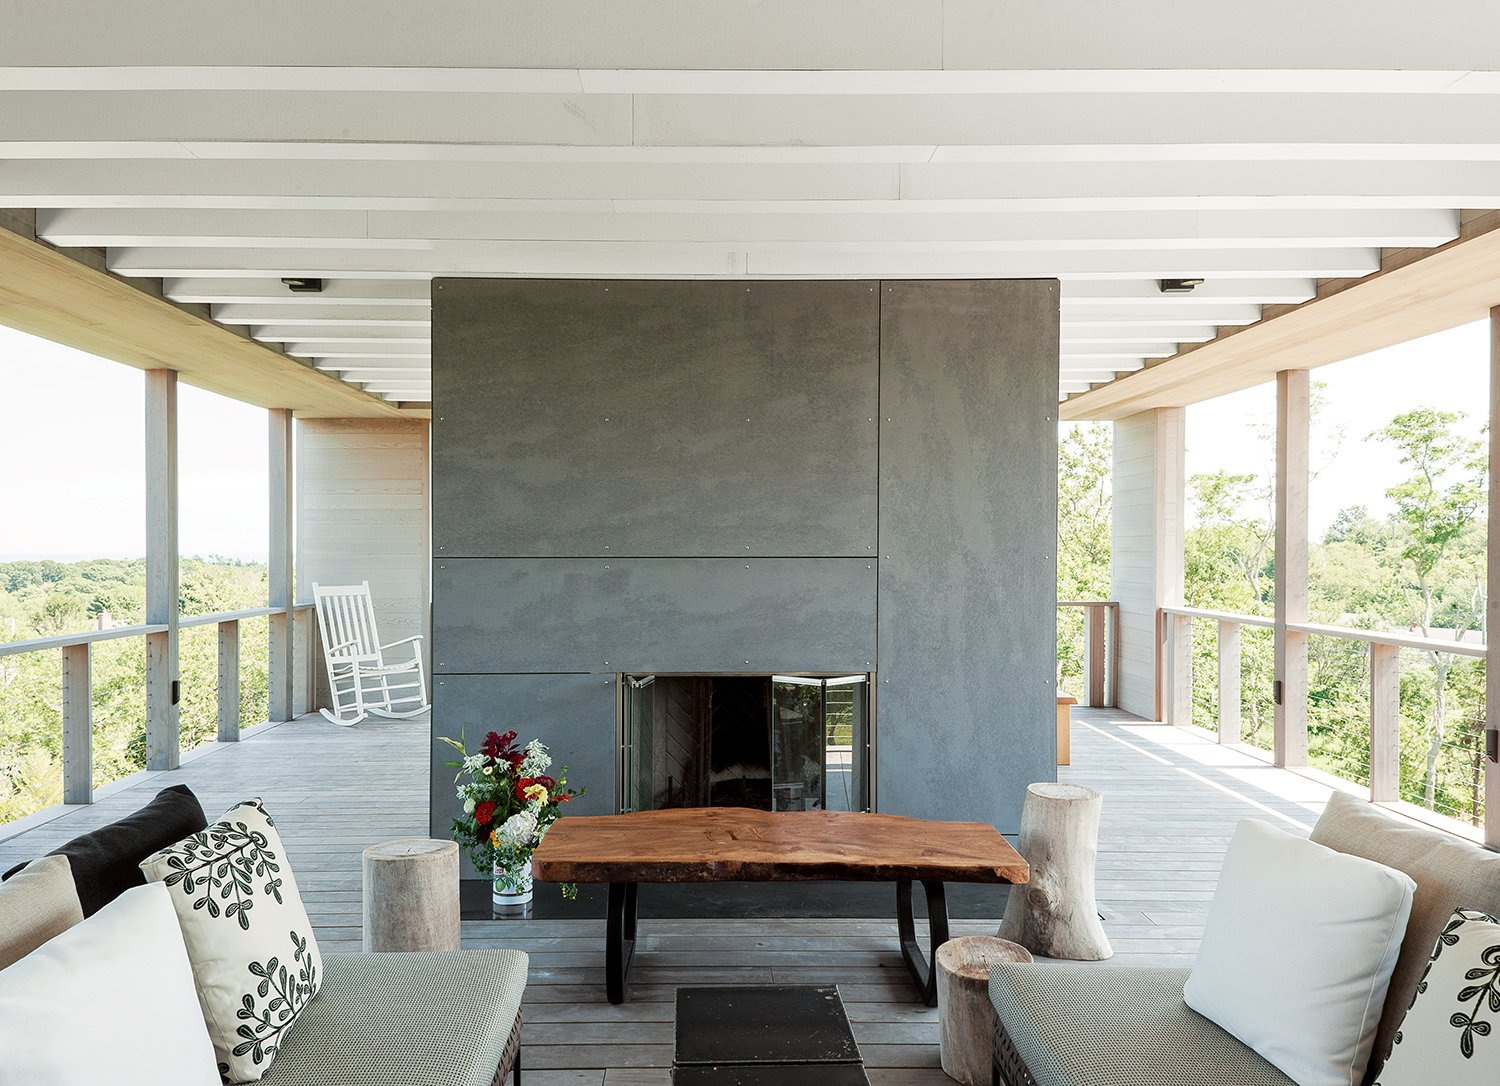 On the rooftop deck is an outdoor fireplace clad in cement board panels, plus a custom wych elm table by Arnold d'Epagnier and Charles Outdoor sofas by B&B Italia. The Soothing Sounds of Nature Fill Up This Island Prefab - Photo 11 of 12